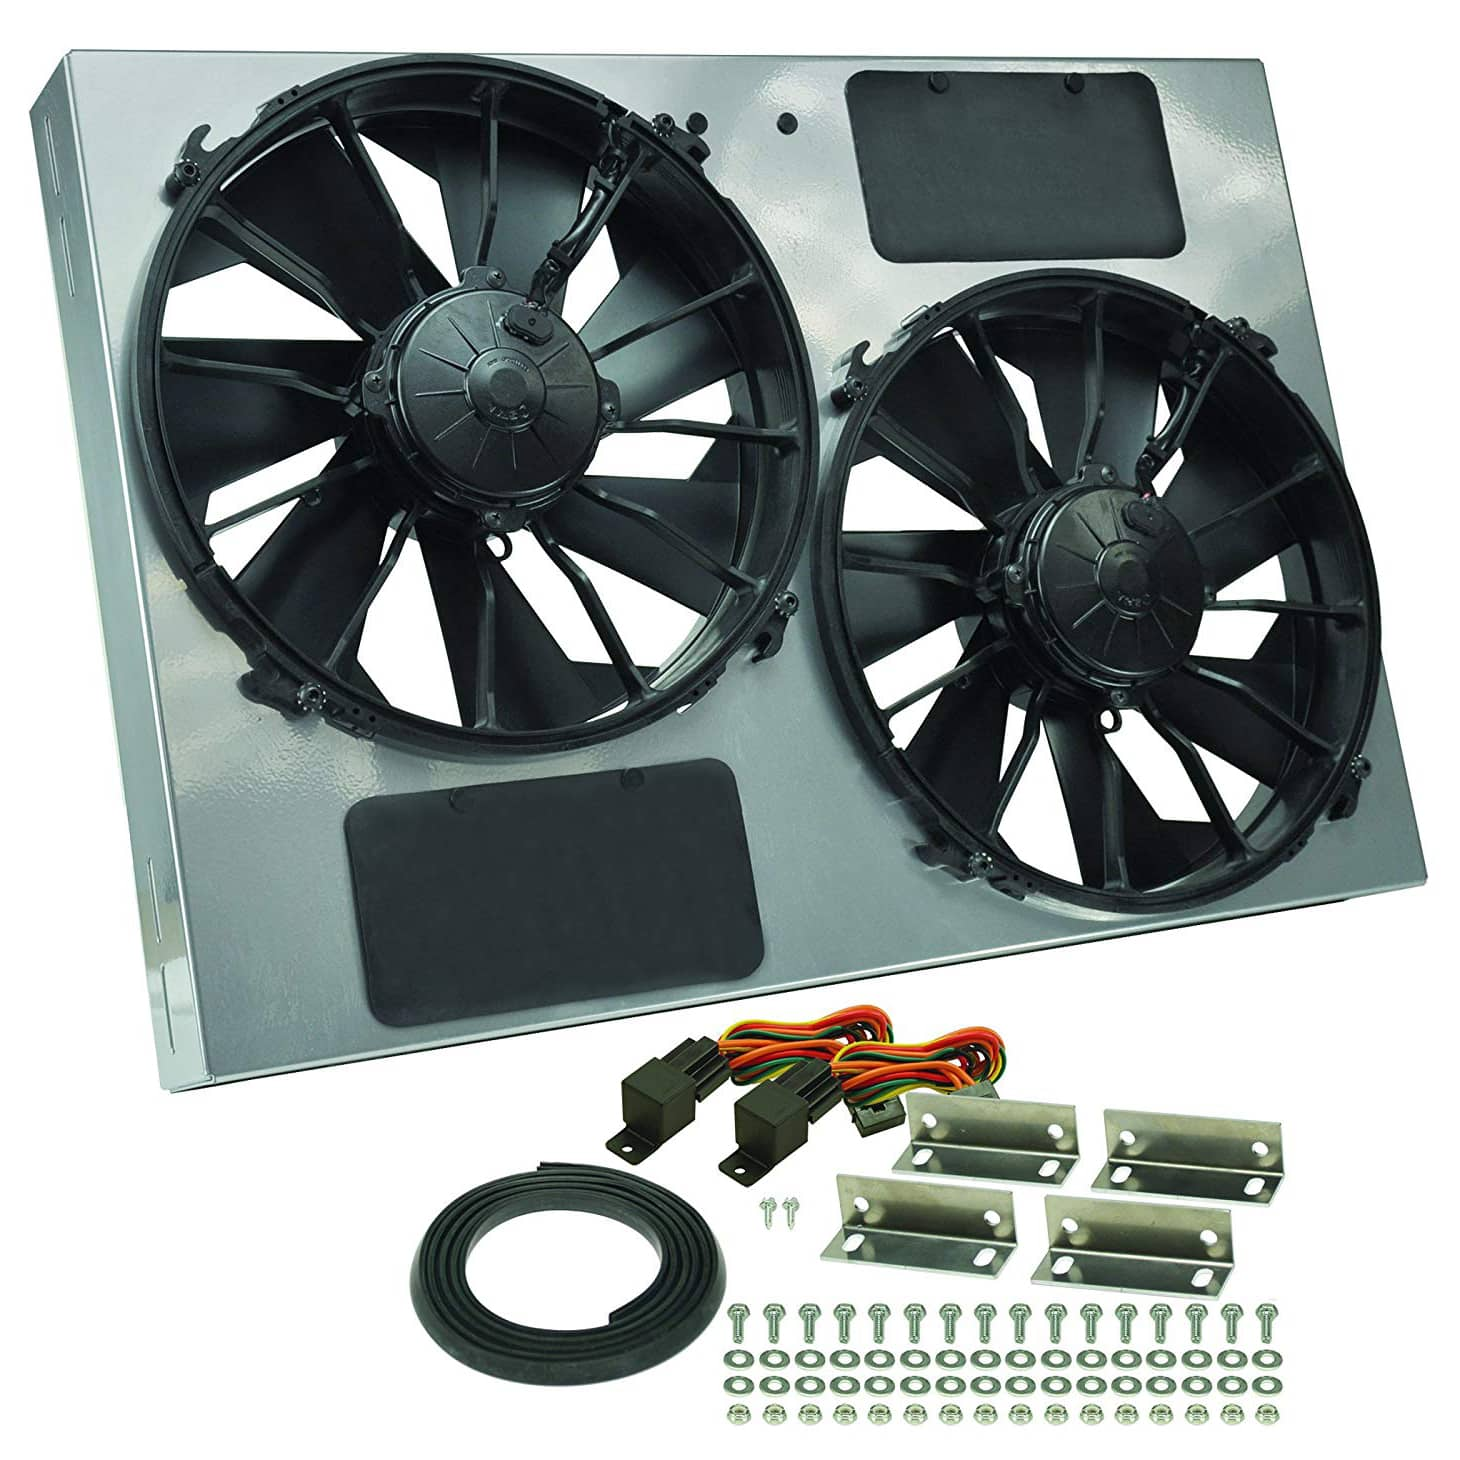 See Photos For Dimensions NEW UNIVERSAL Radiator Cooling Fan Dual Motor